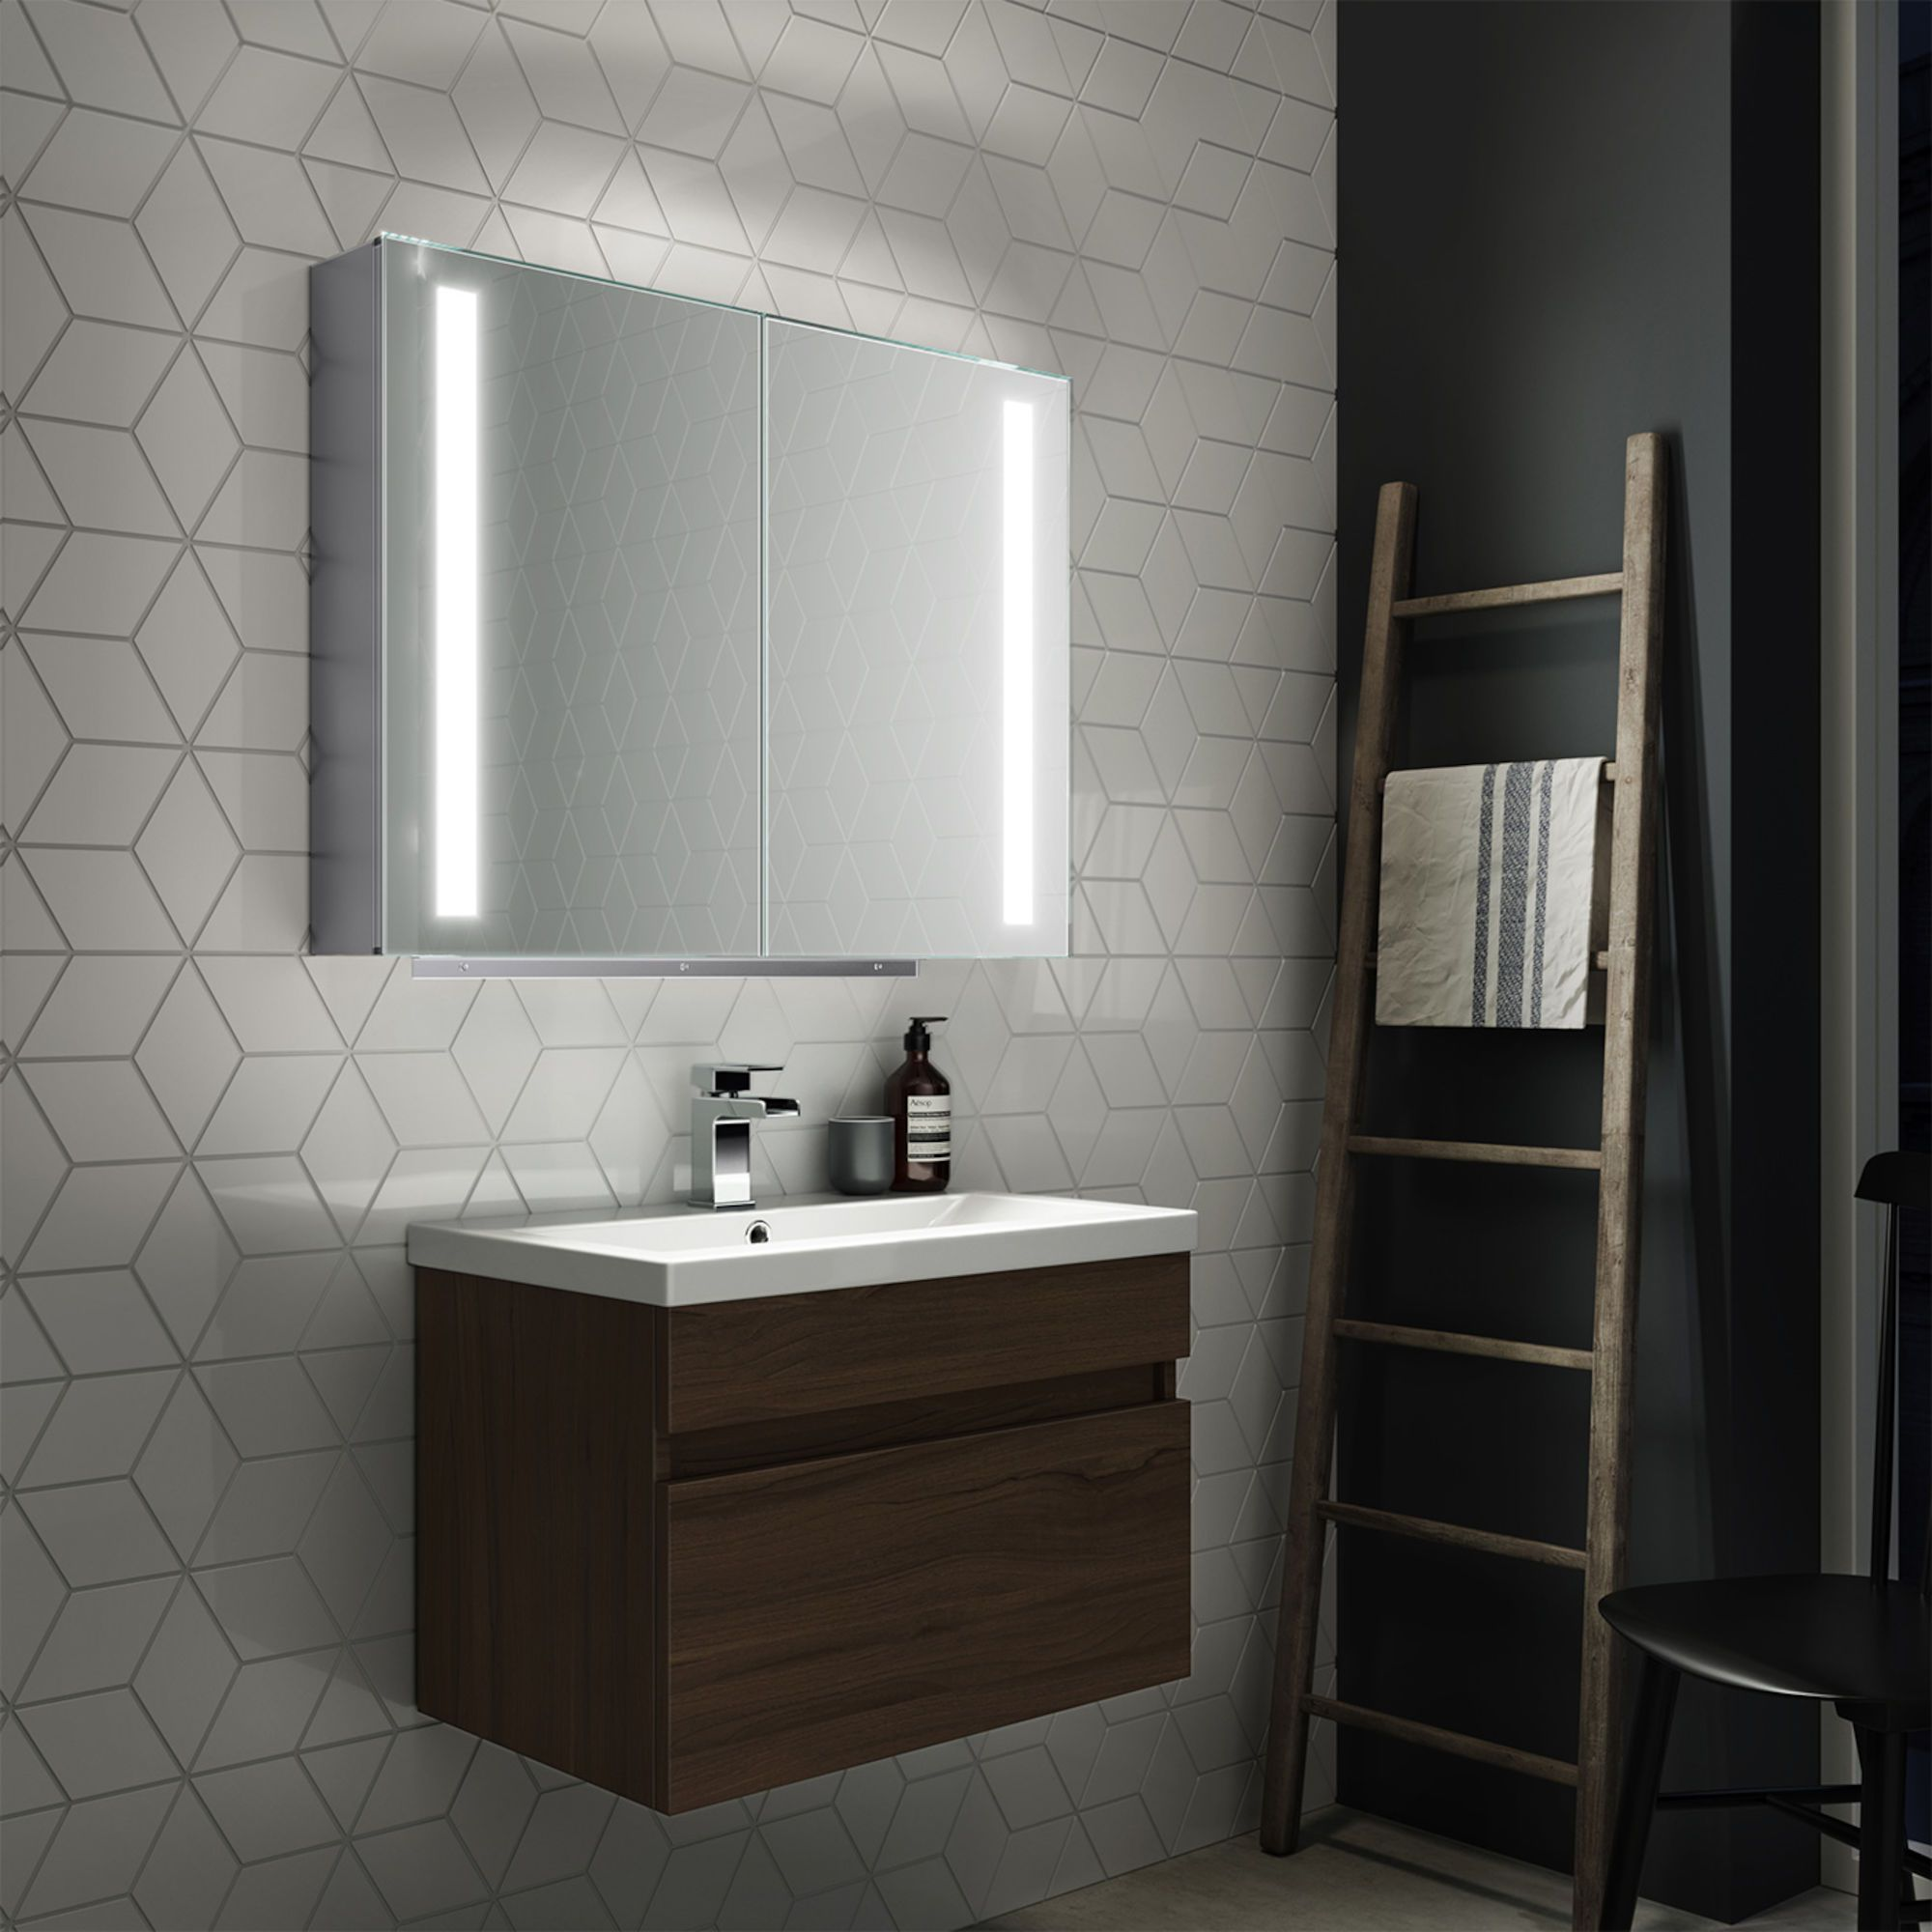 16+ Bathroom mirror cabinets with battery operated lights model